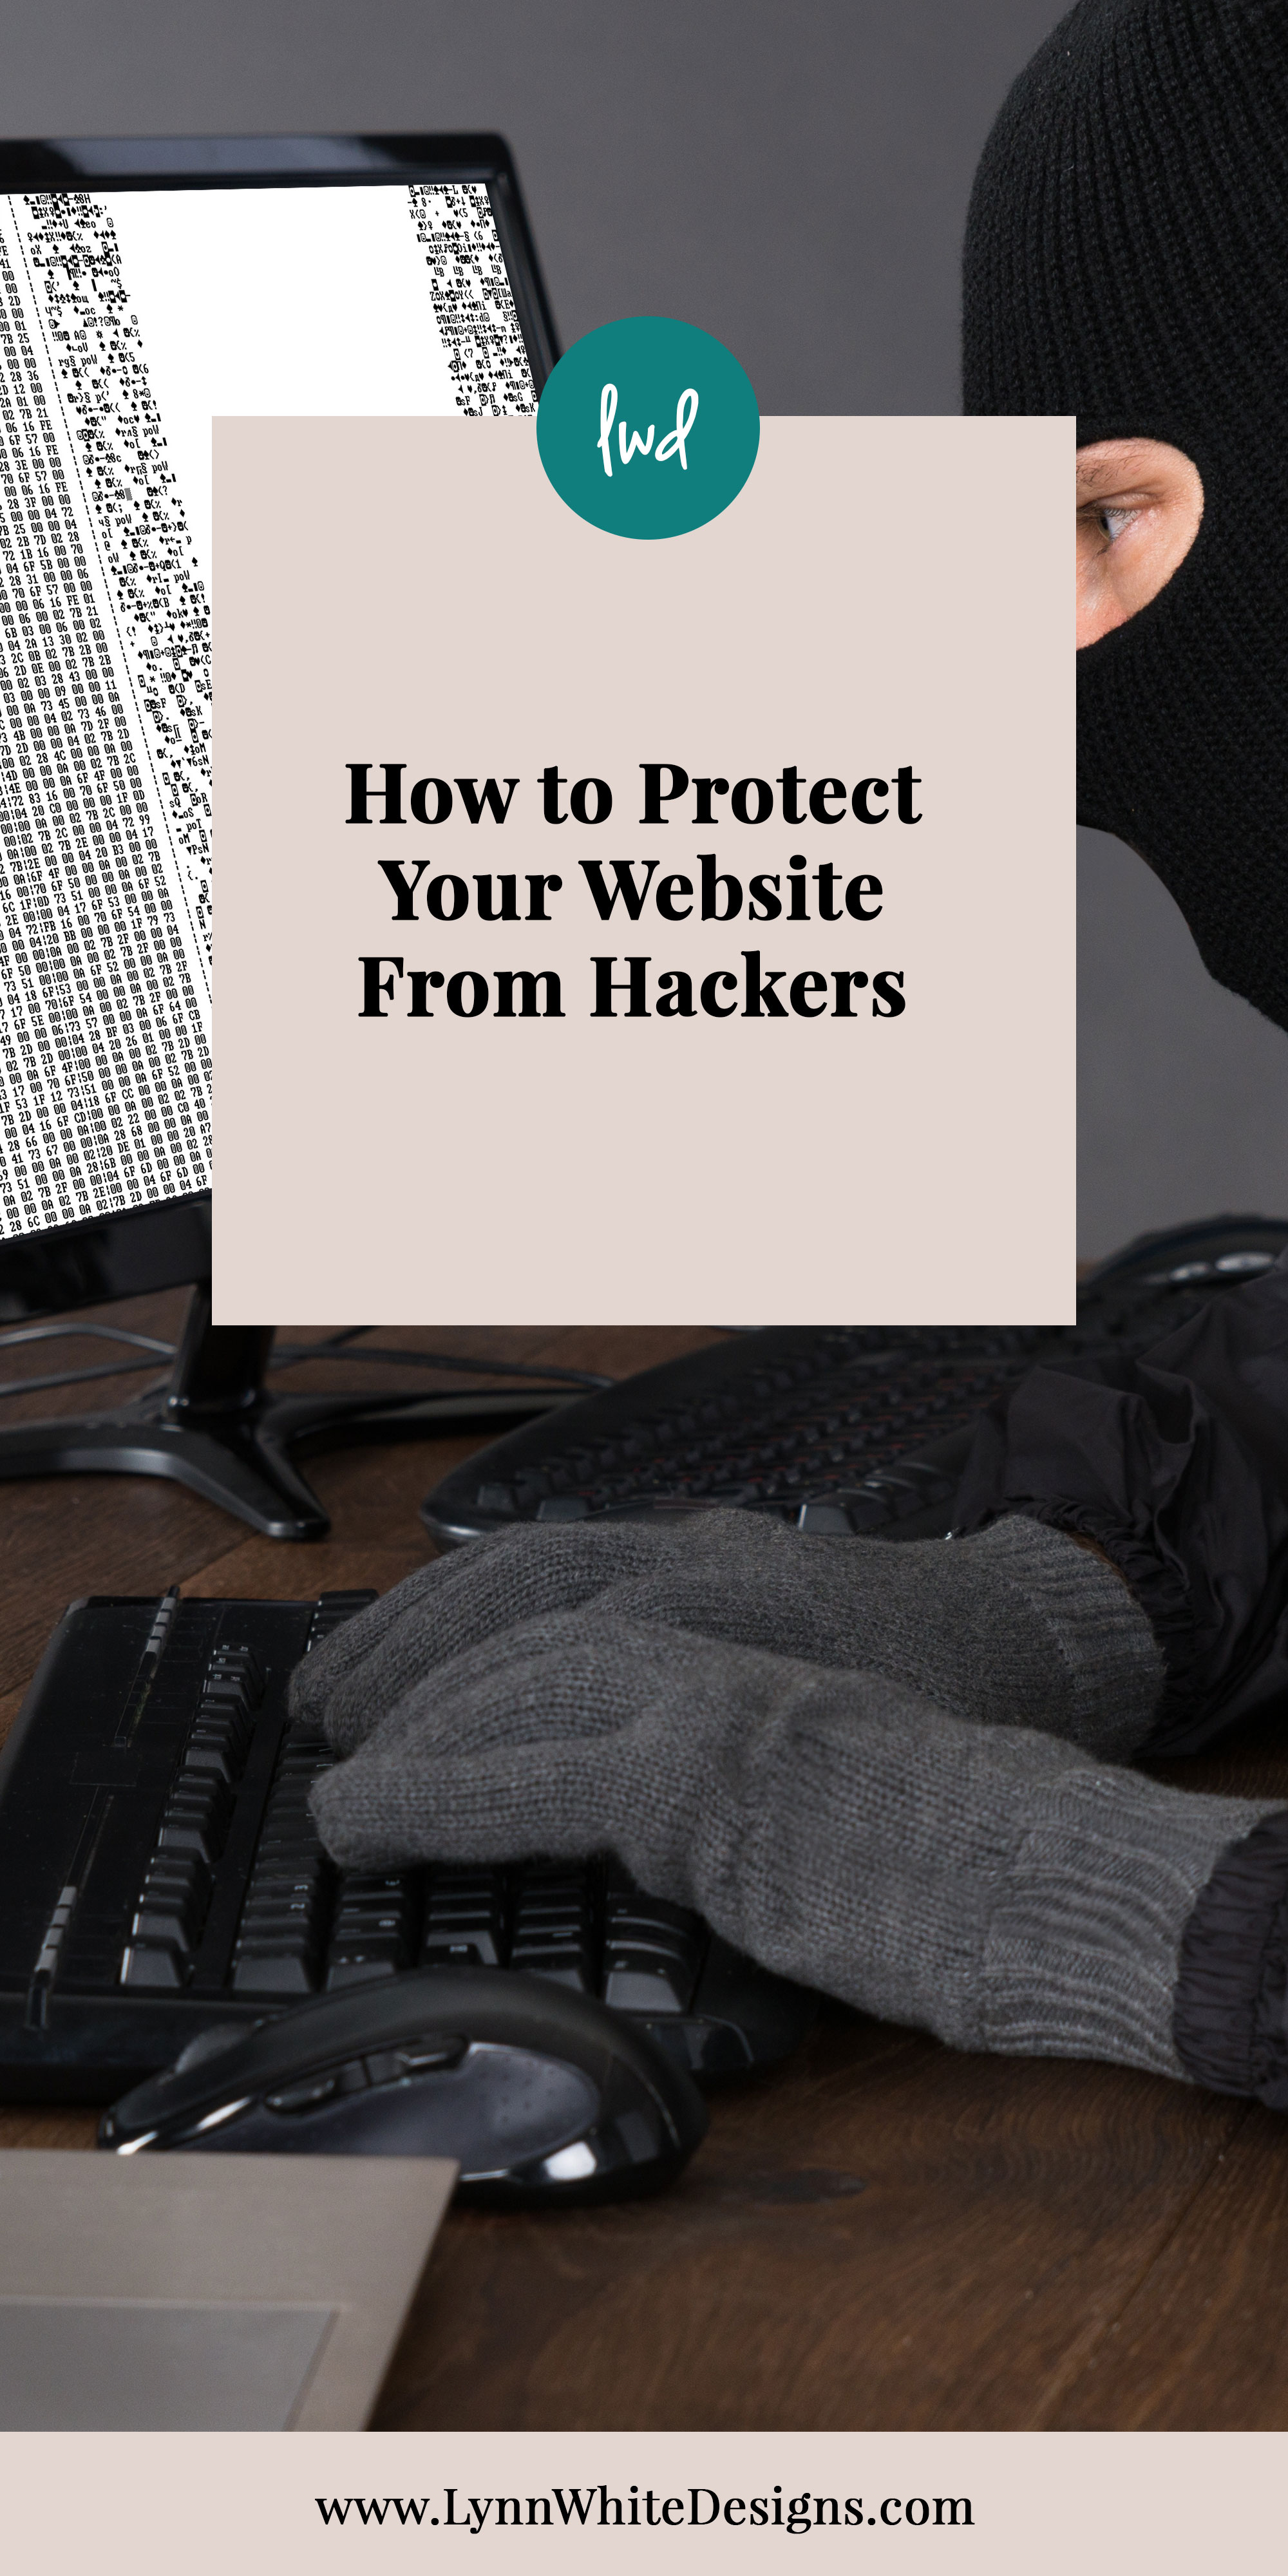 Protect-websites-from-being-hacked.jpg